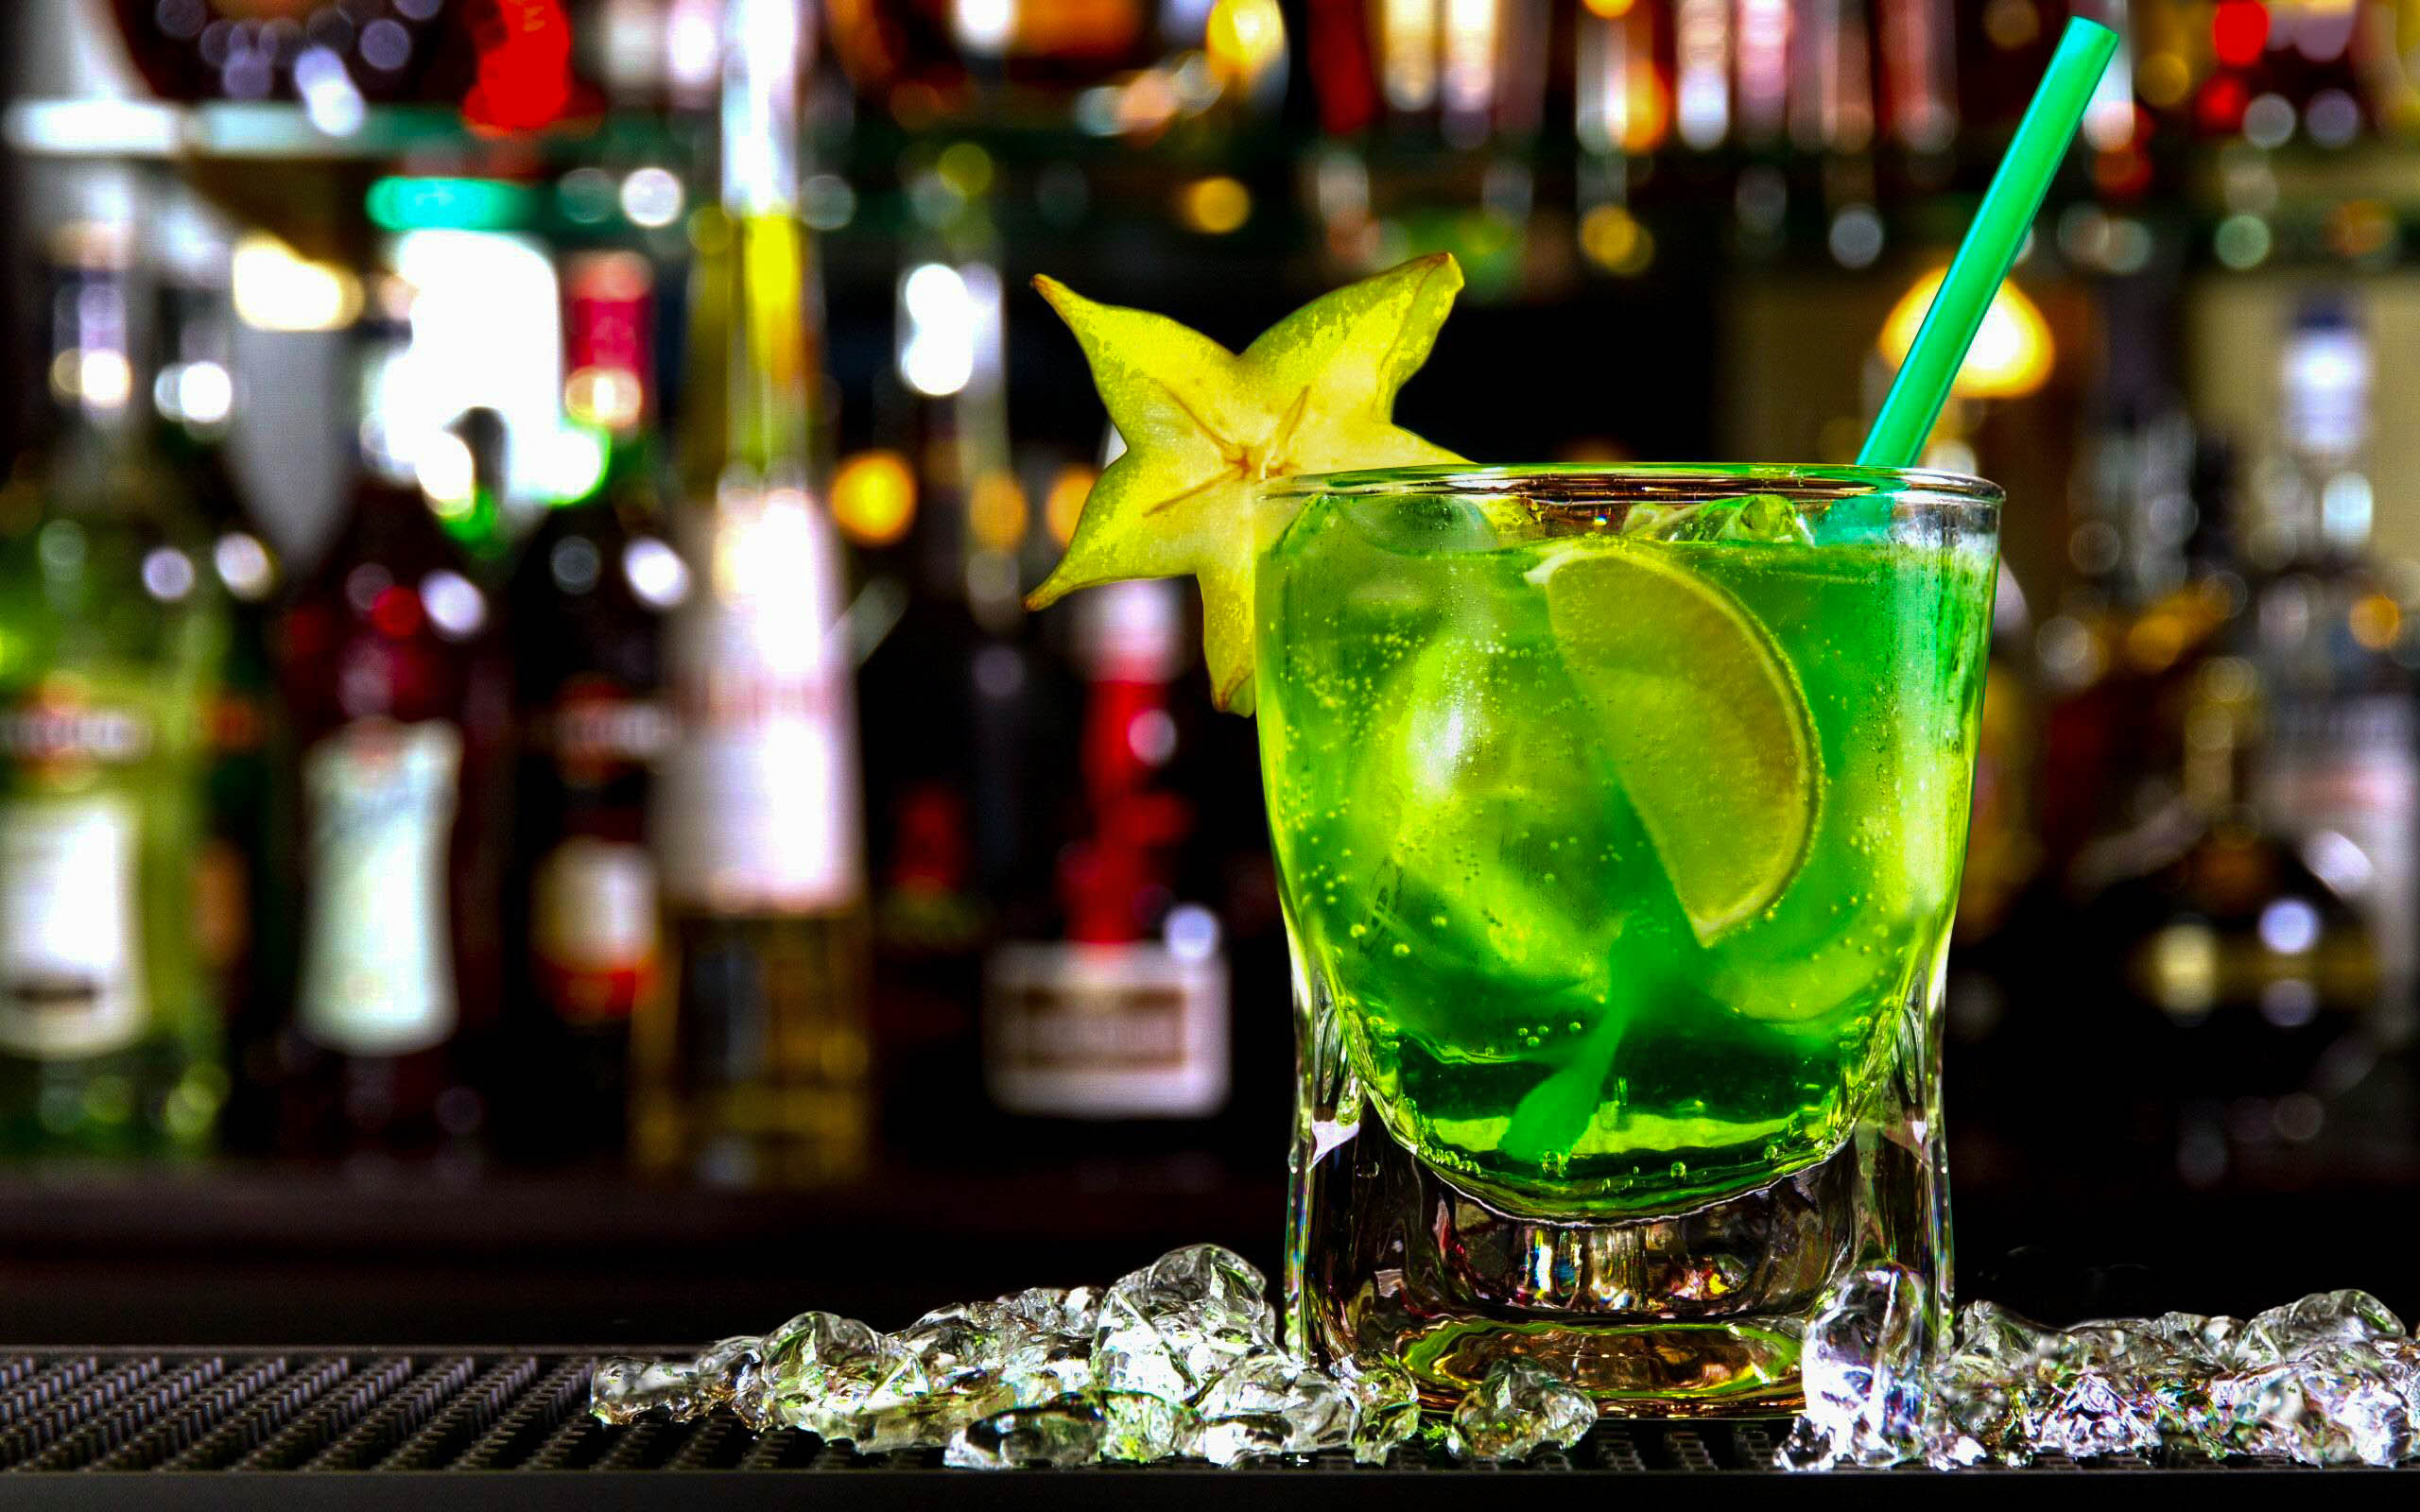 Caipirinha Wallpaper Cocktail Glass Hd Wallpapers Images In High Quality All Hd